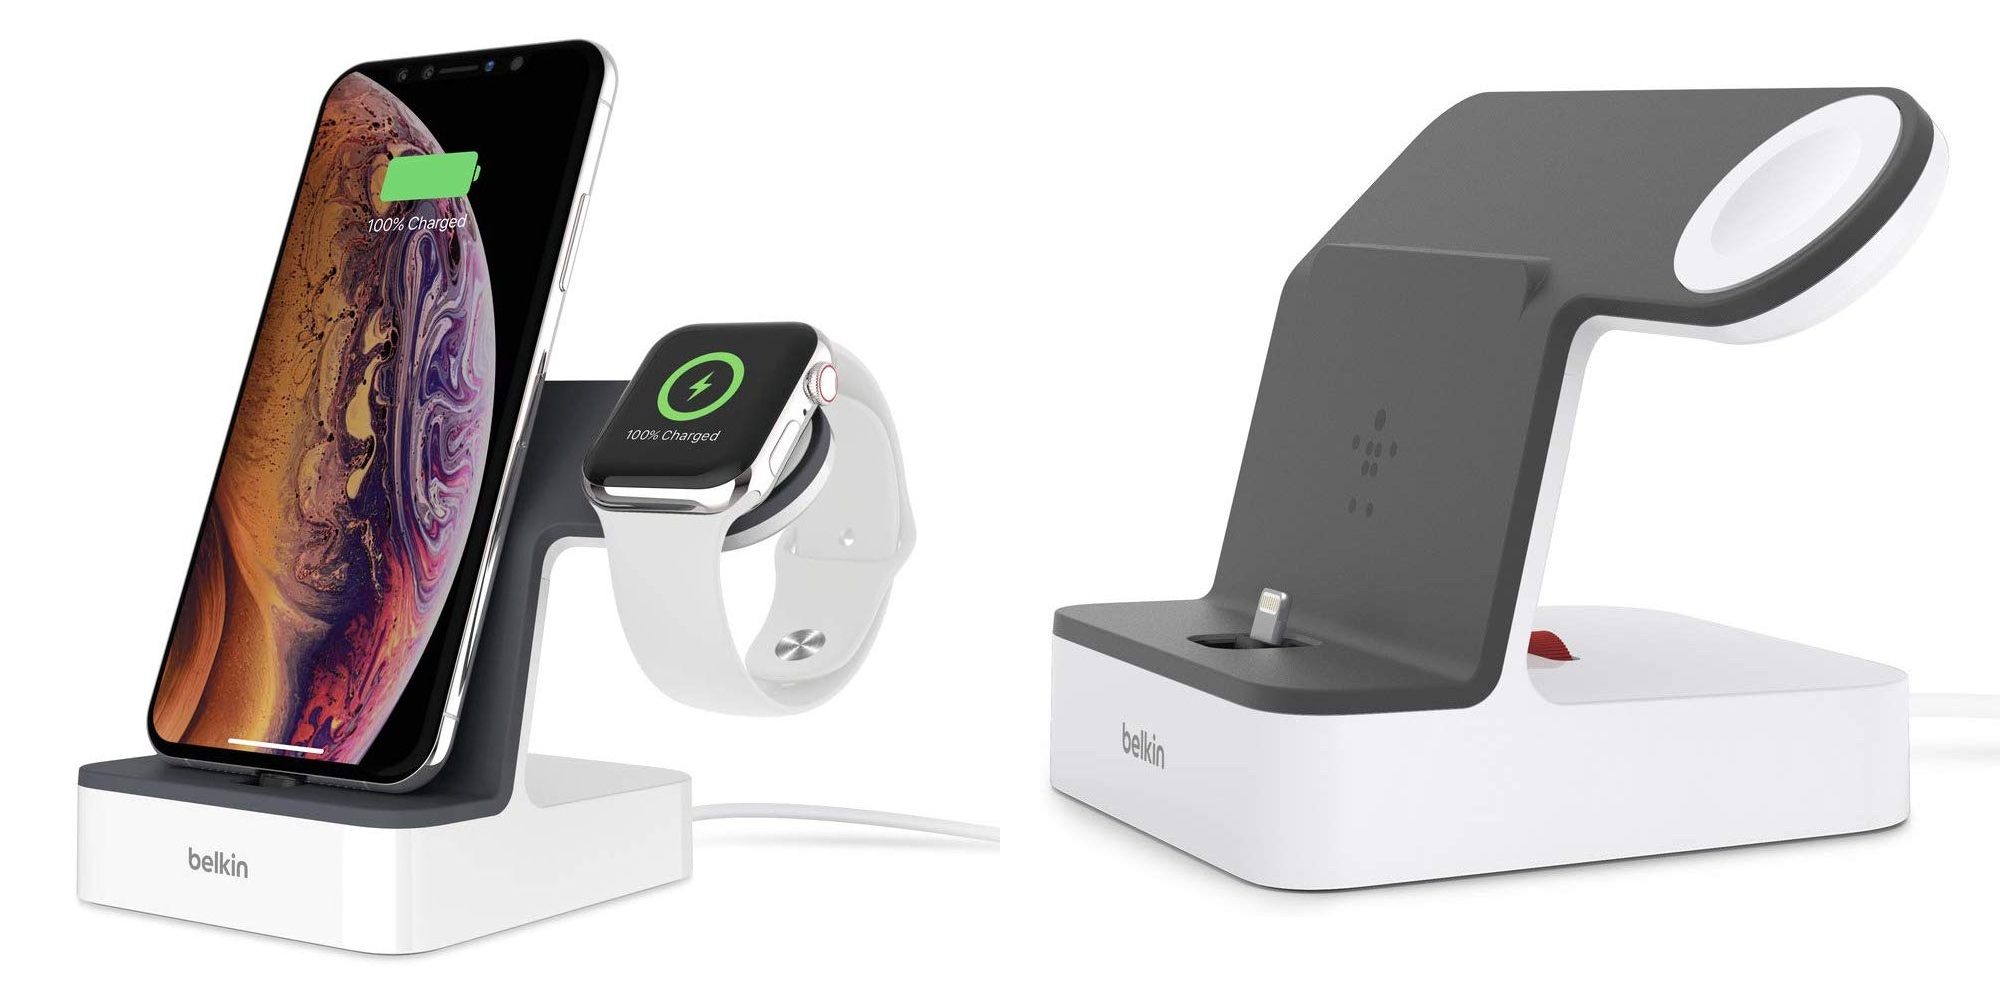 Belkin Powerhouse charges your iPhone and Apple Watch: $80 (Reg. $100)